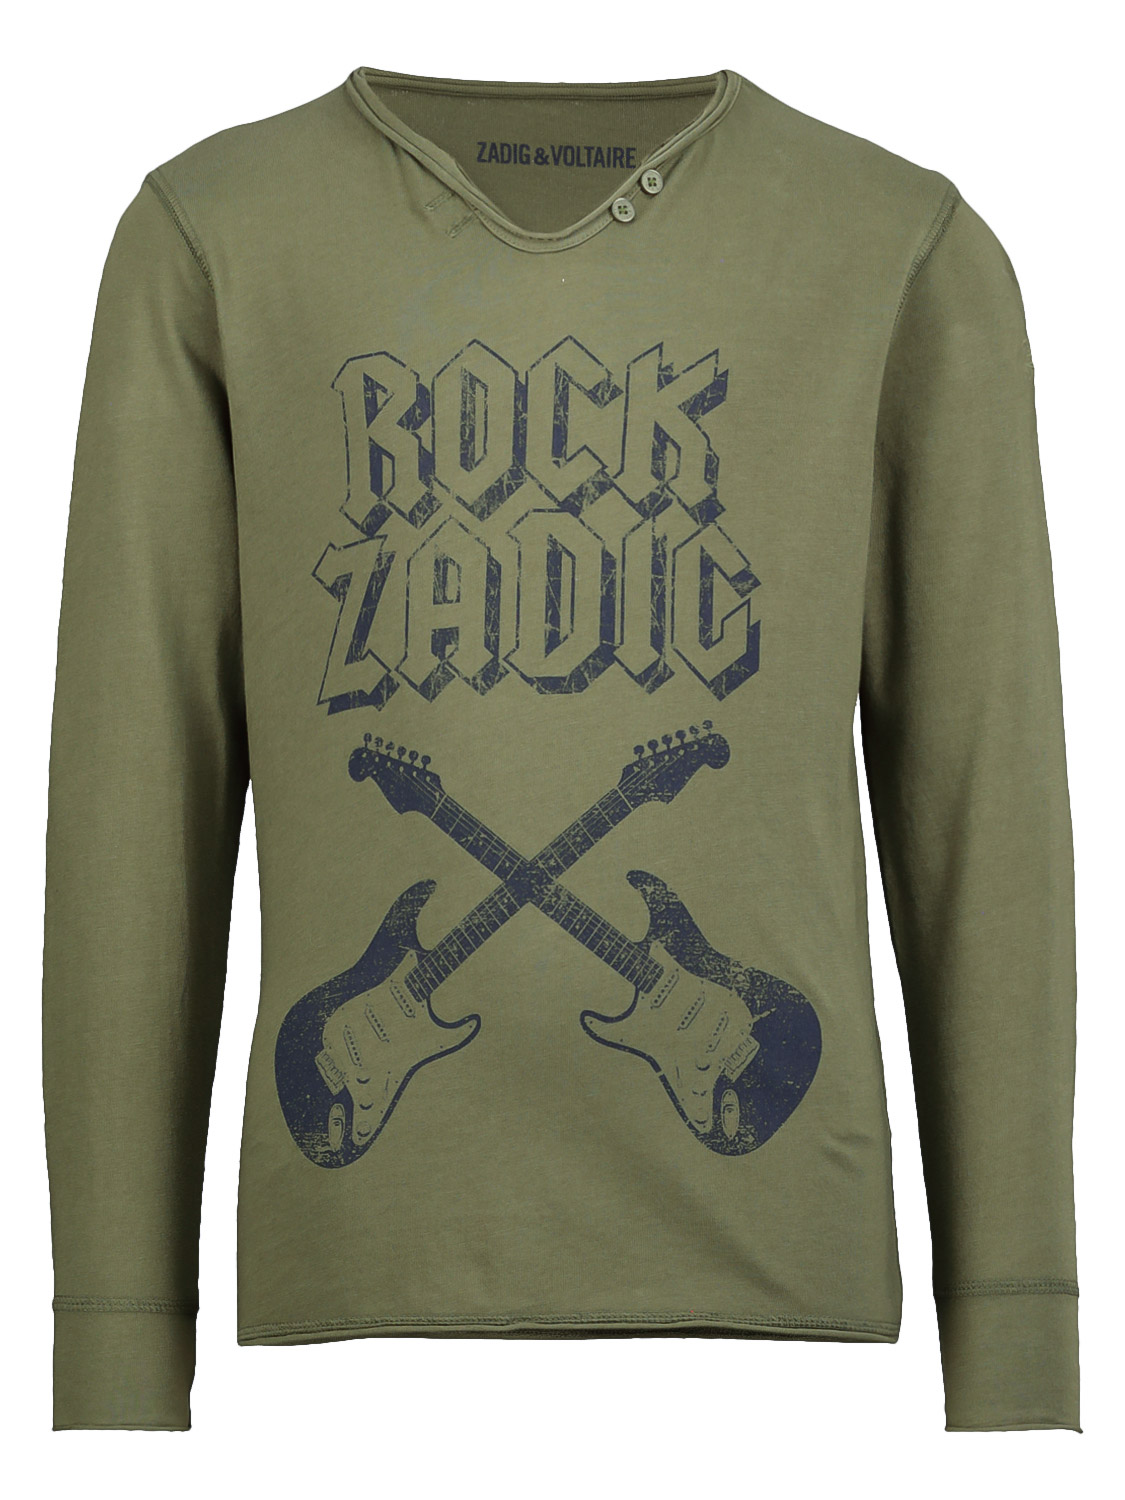 Zadig & Voltaire KIDS LONG-SLEEVE FOR BOYS